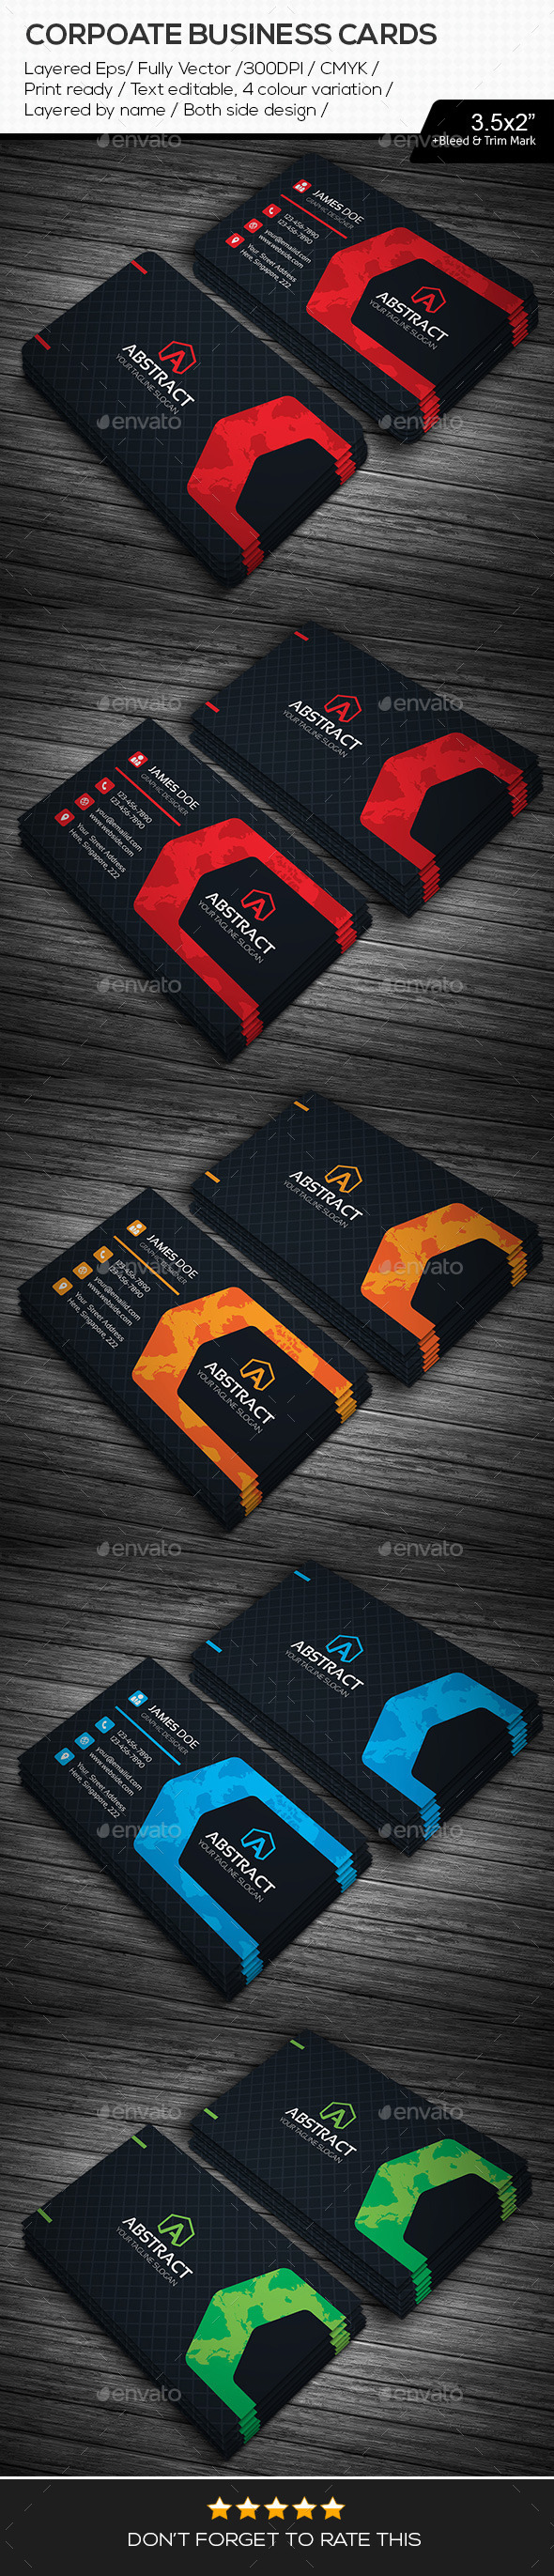 GraphicRiver Abstract Corporate Business Cards 11216764